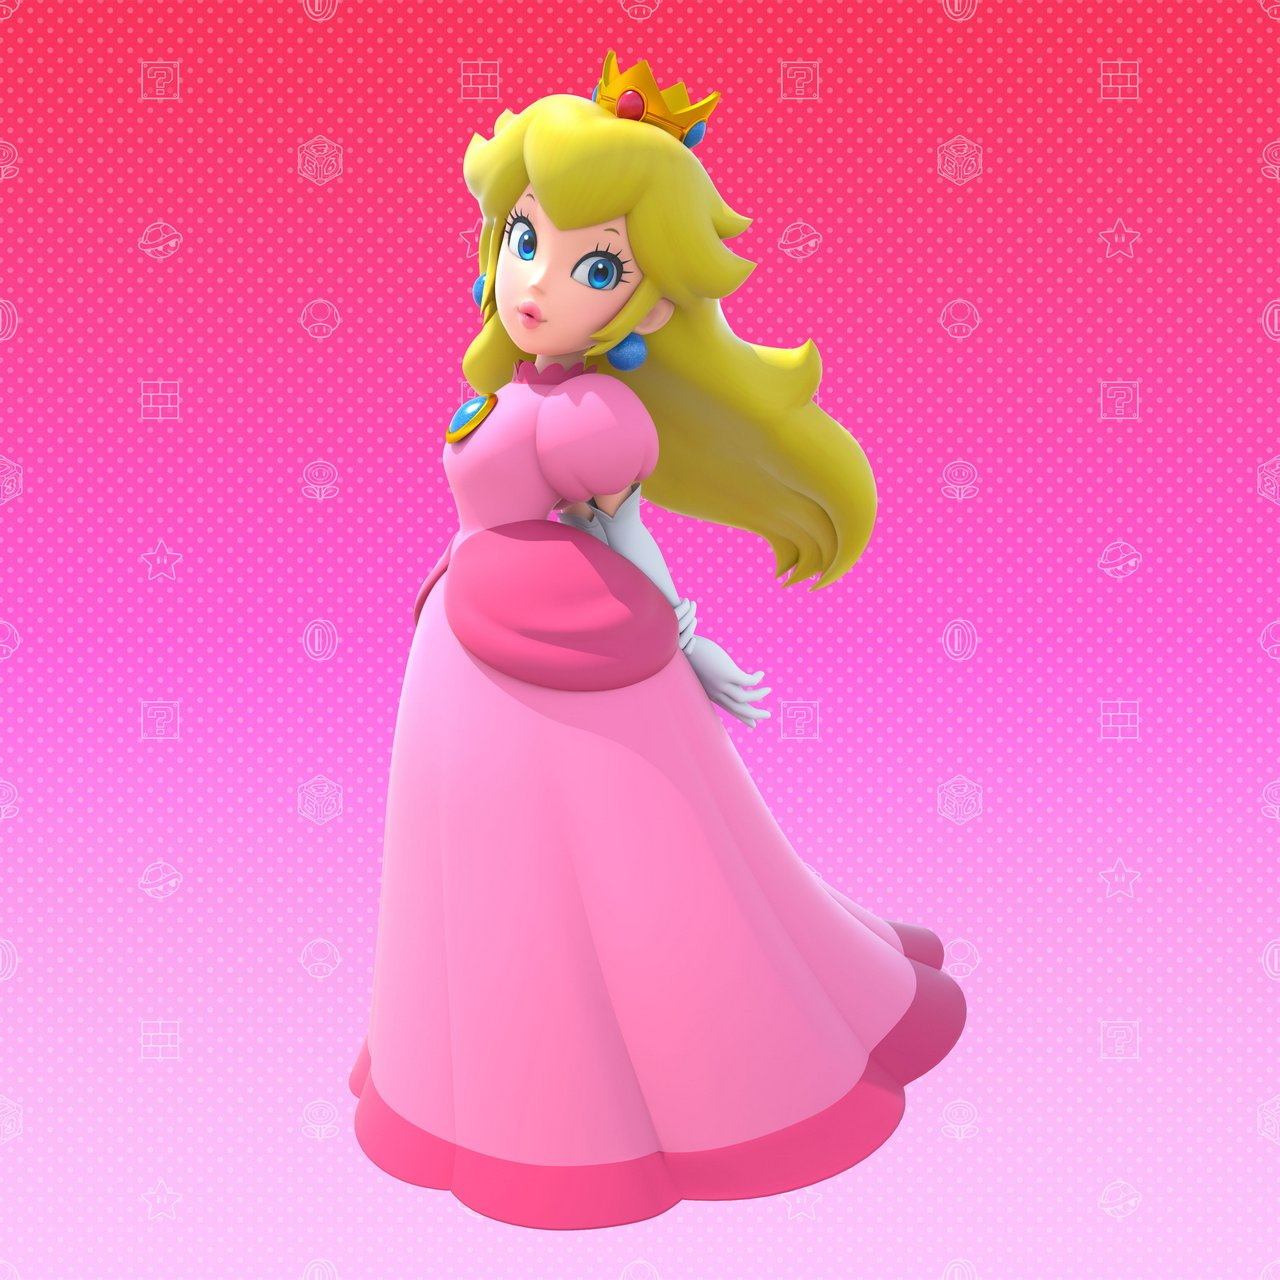 Princess Peach clipart mario party 9 Wiiu amazing looks amazing Peach's